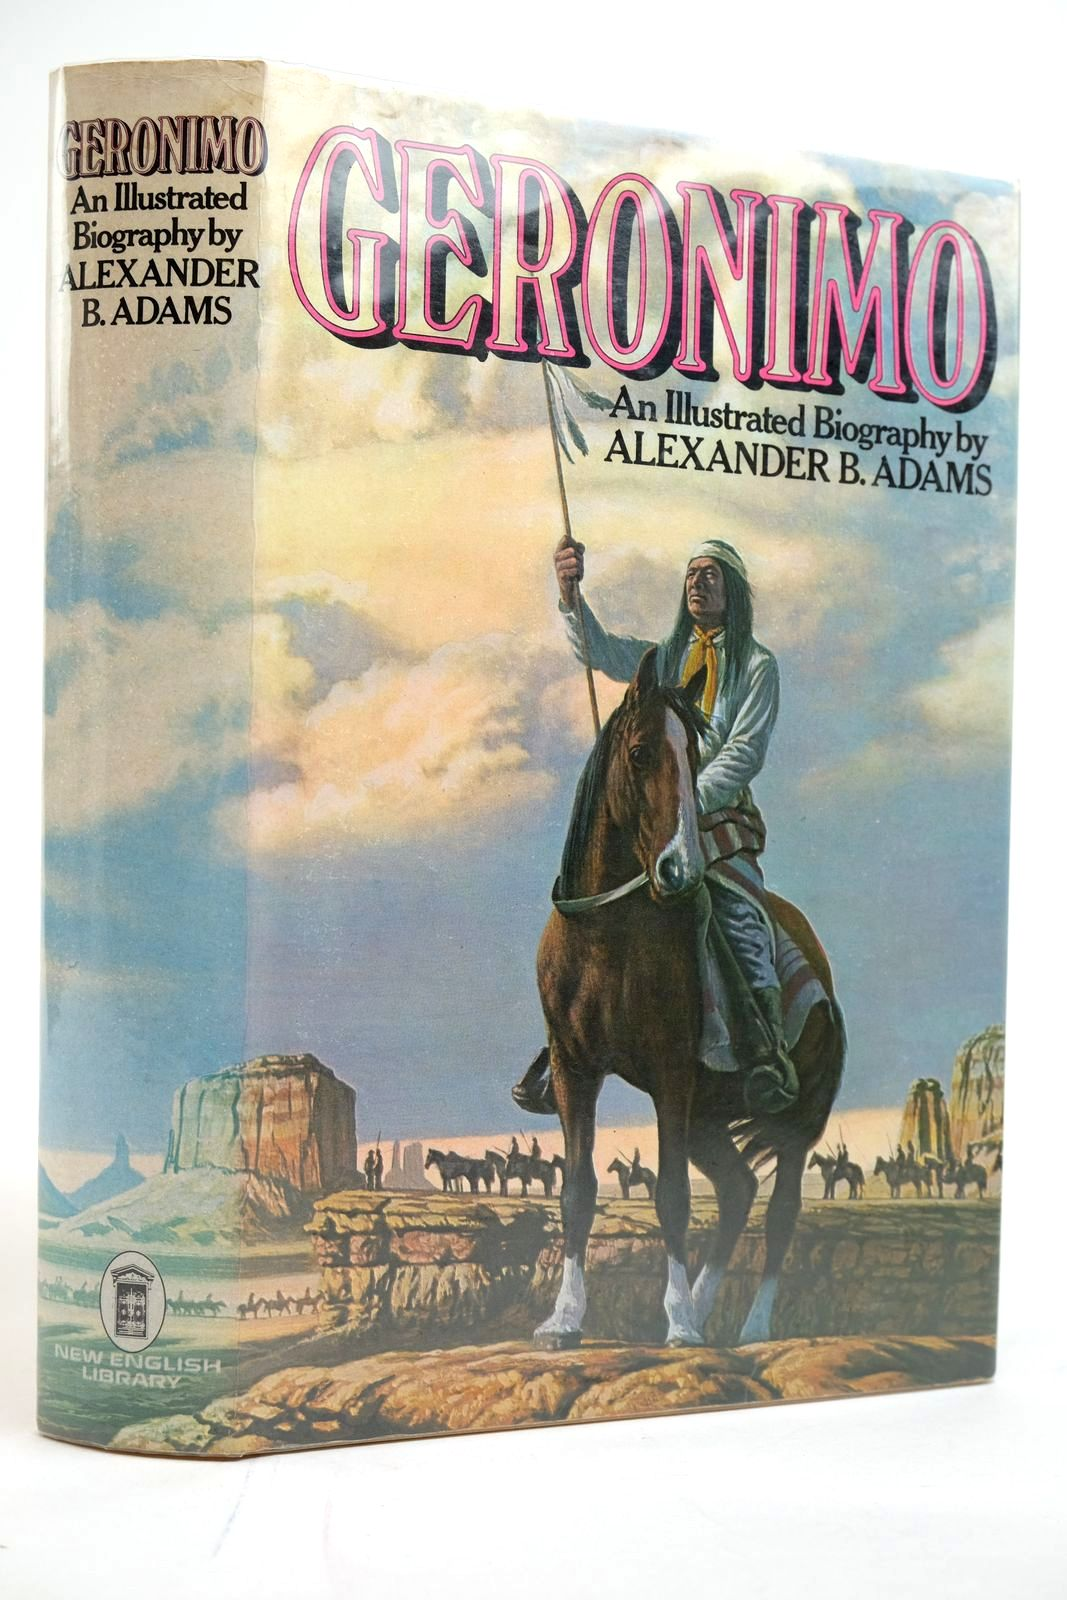 Photo of GERONIMO: A BIOGRAPHY written by Adams, Alexander B. published by New English Library (STOCK CODE: 2135254)  for sale by Stella & Rose's Books